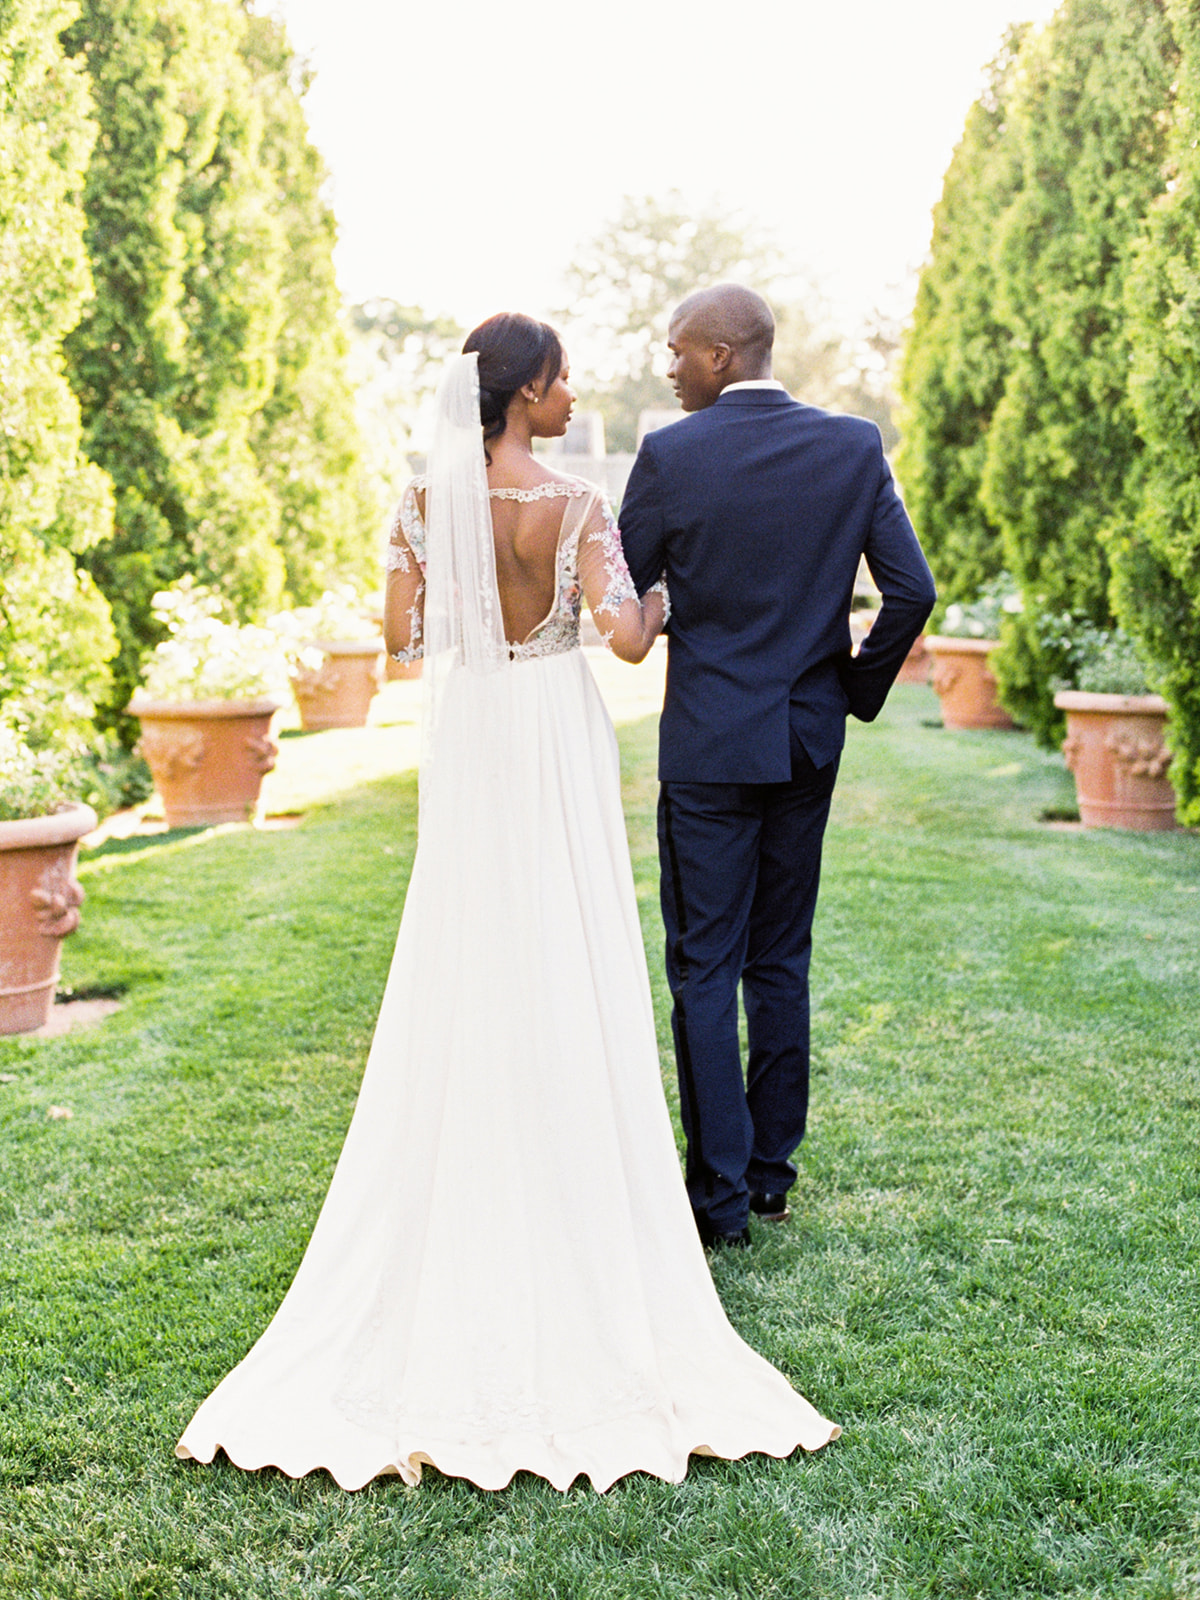 Tara Bielecki Photography - Denver Botanic Garden Wedding featured on Style Me Pretty